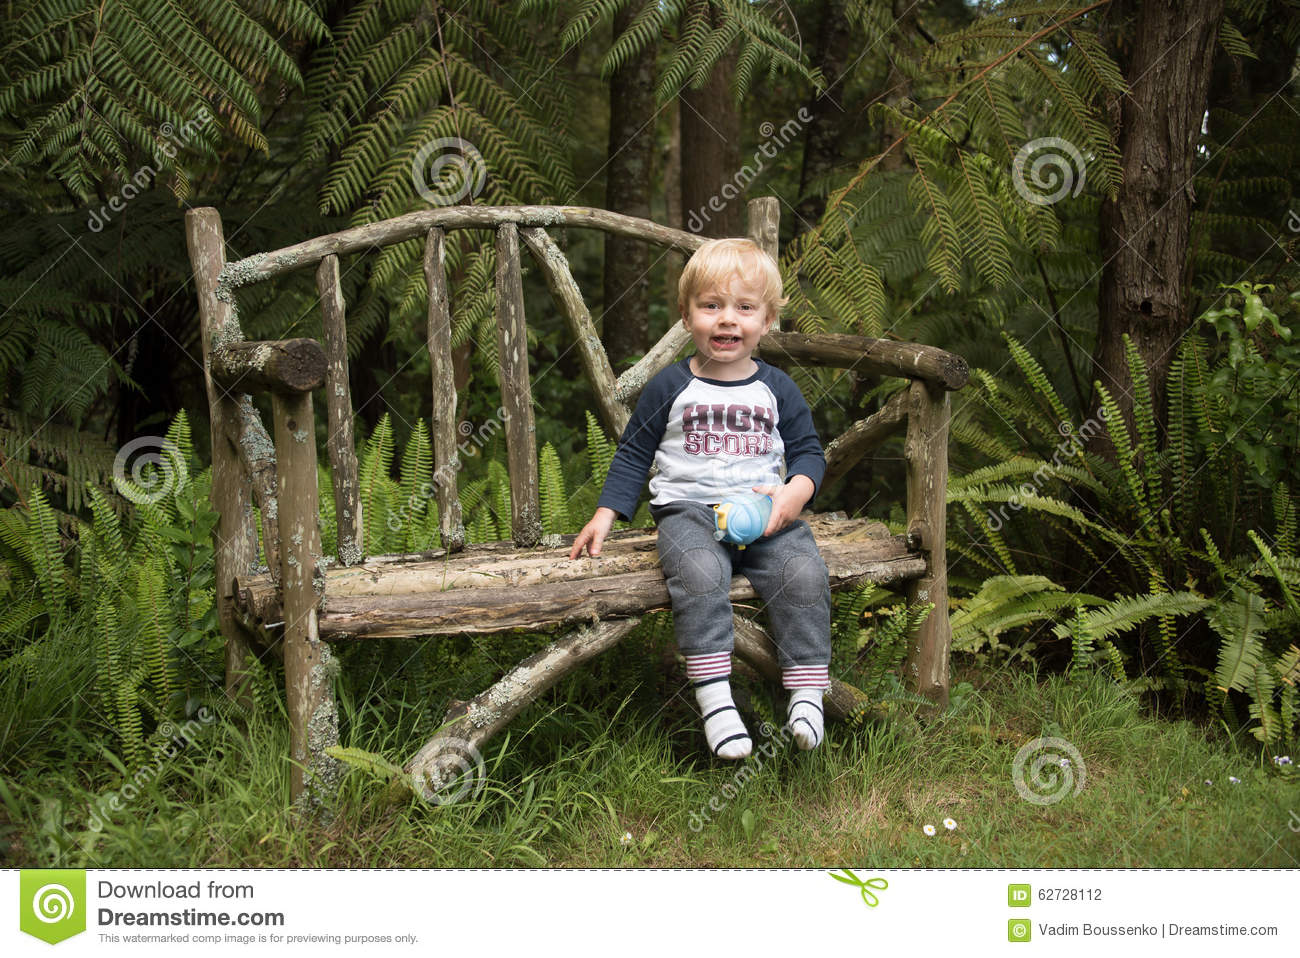 A Happy Child Sitting On A Garden Bench Stock Photo - Image of happy